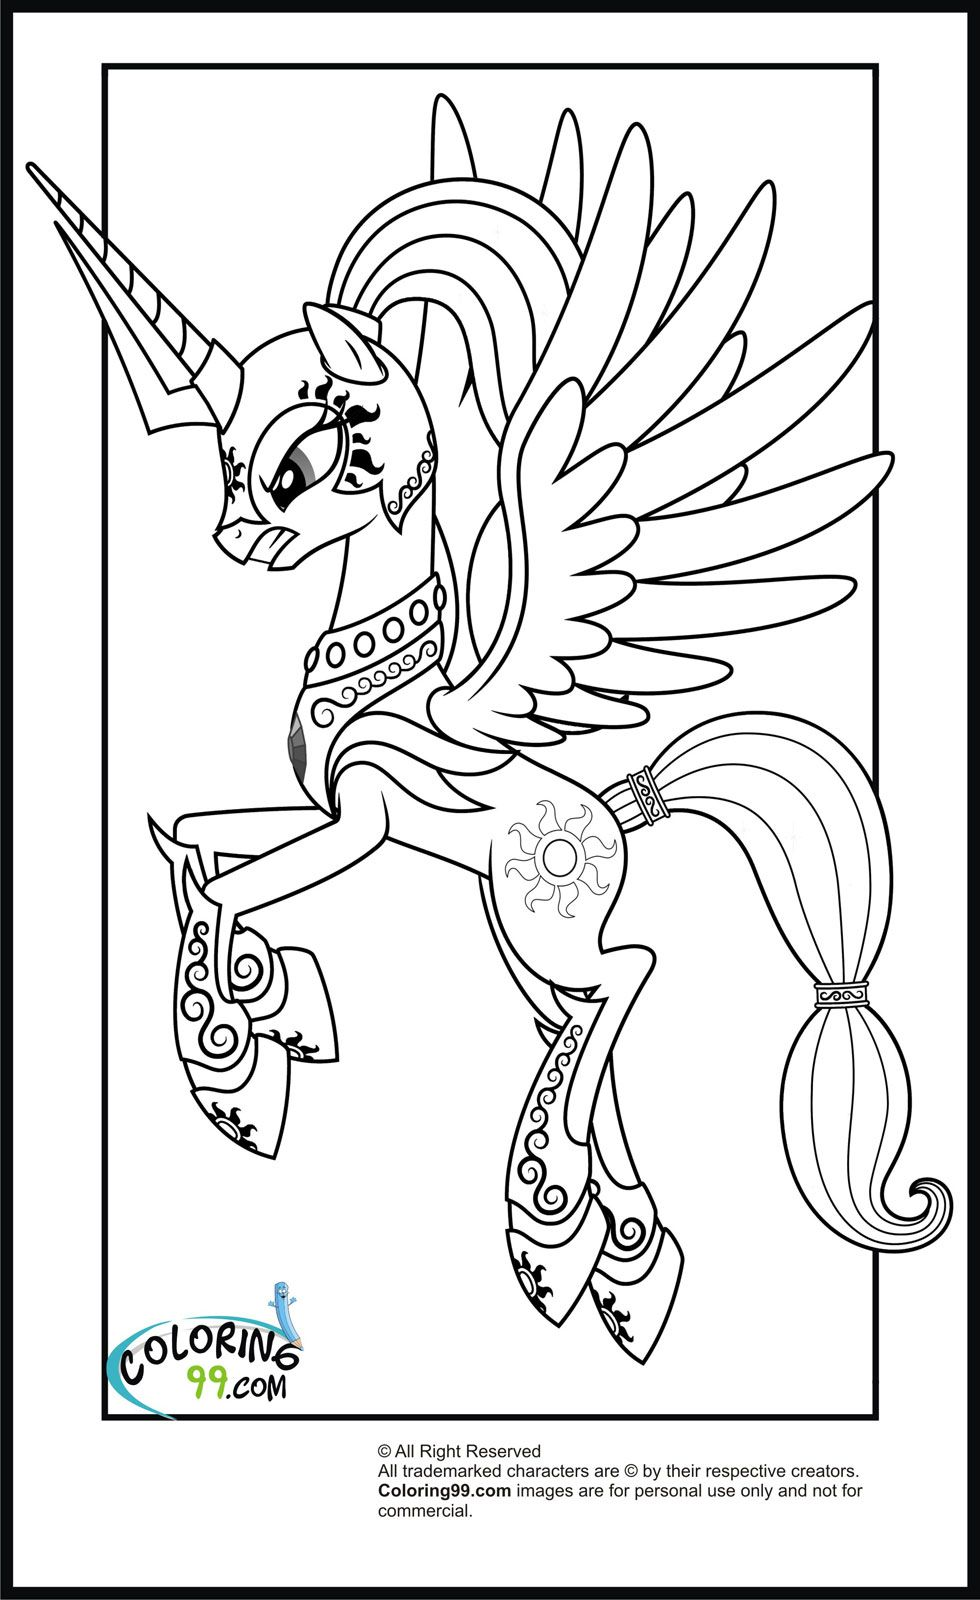 My little pony coloring pages rarity in dress - My Little Pony Coloring Pages My Little Pony Princess Celestia Coloring Pages